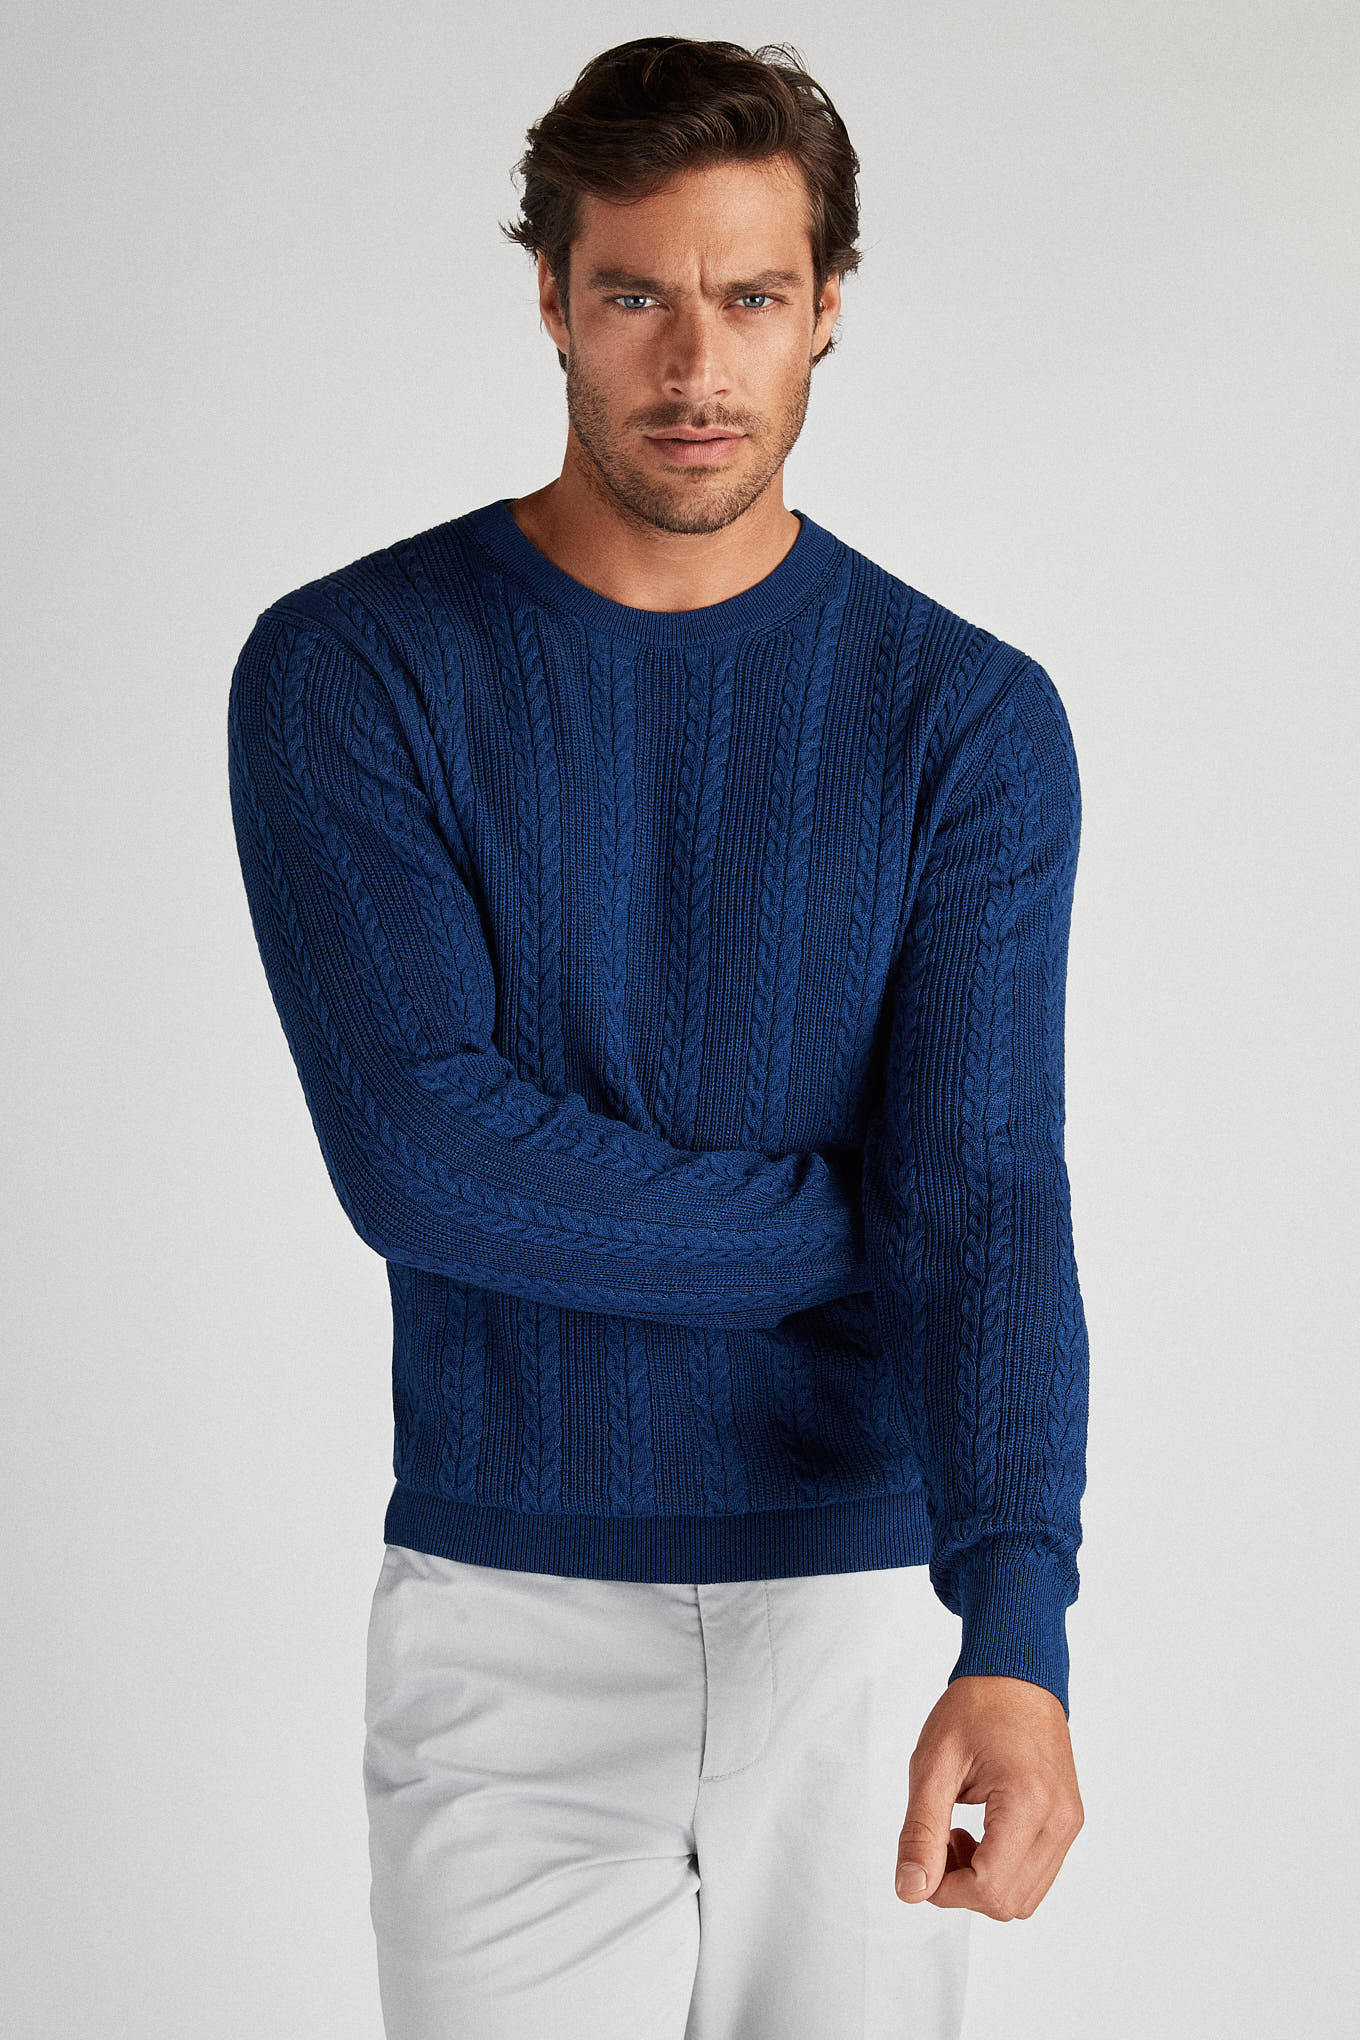 Sweater Indigo Casual Man